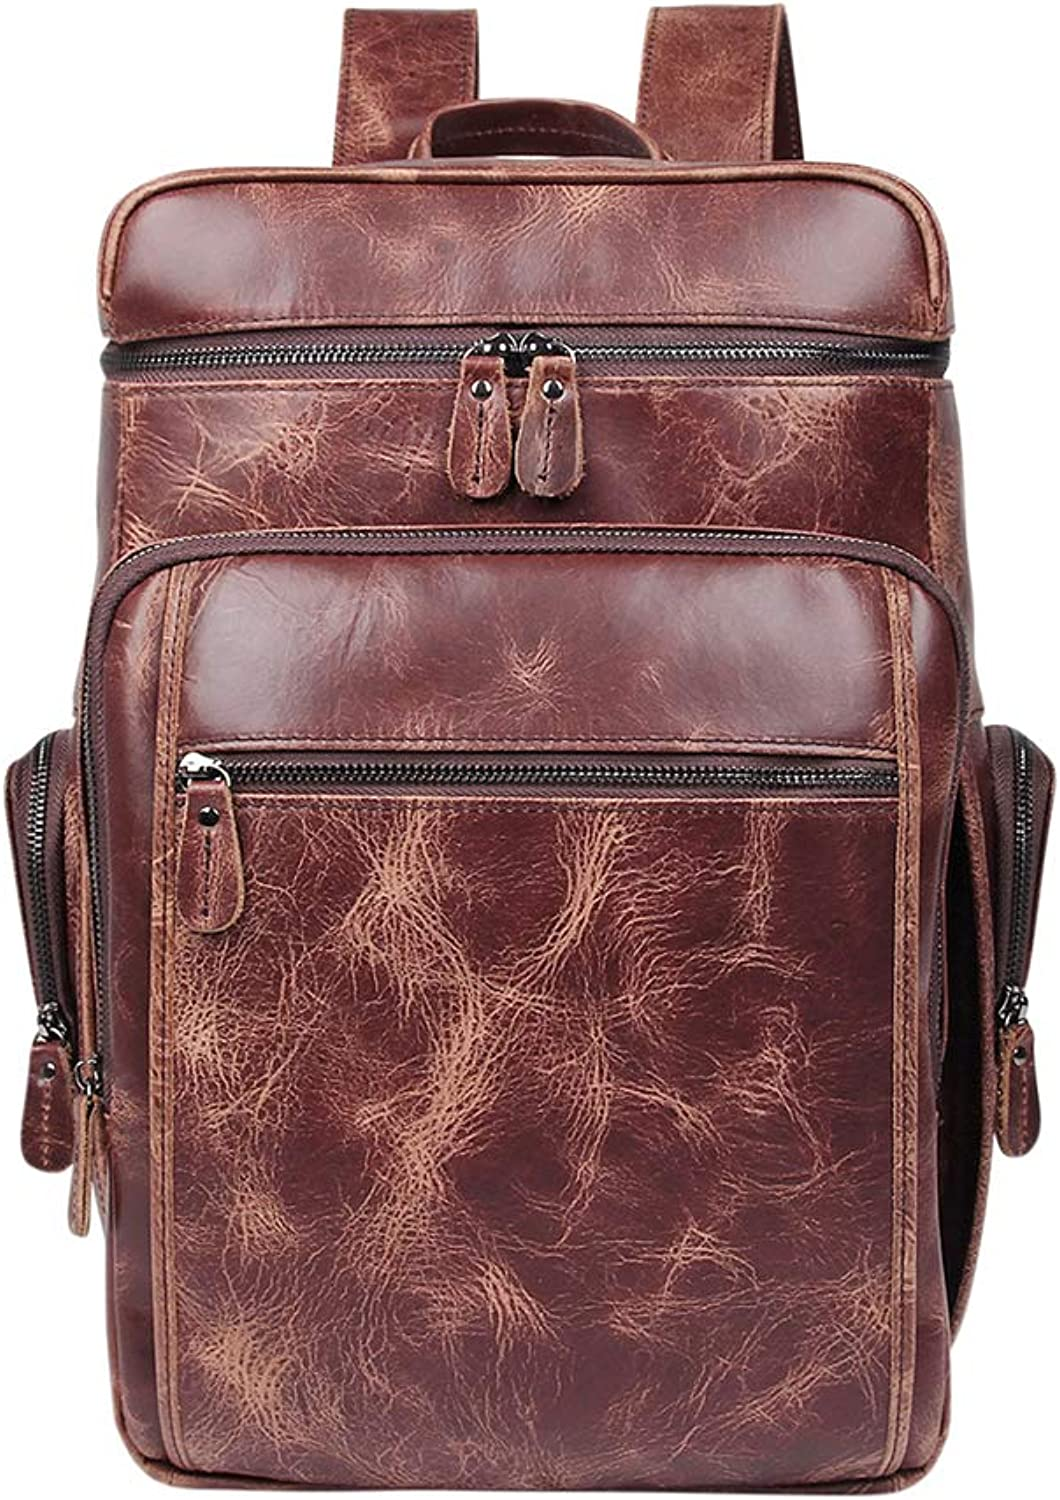 Genda 2Archer Genuine Leather Men's Laptop Backpack Overload Heavy Travel Bag (Brown)